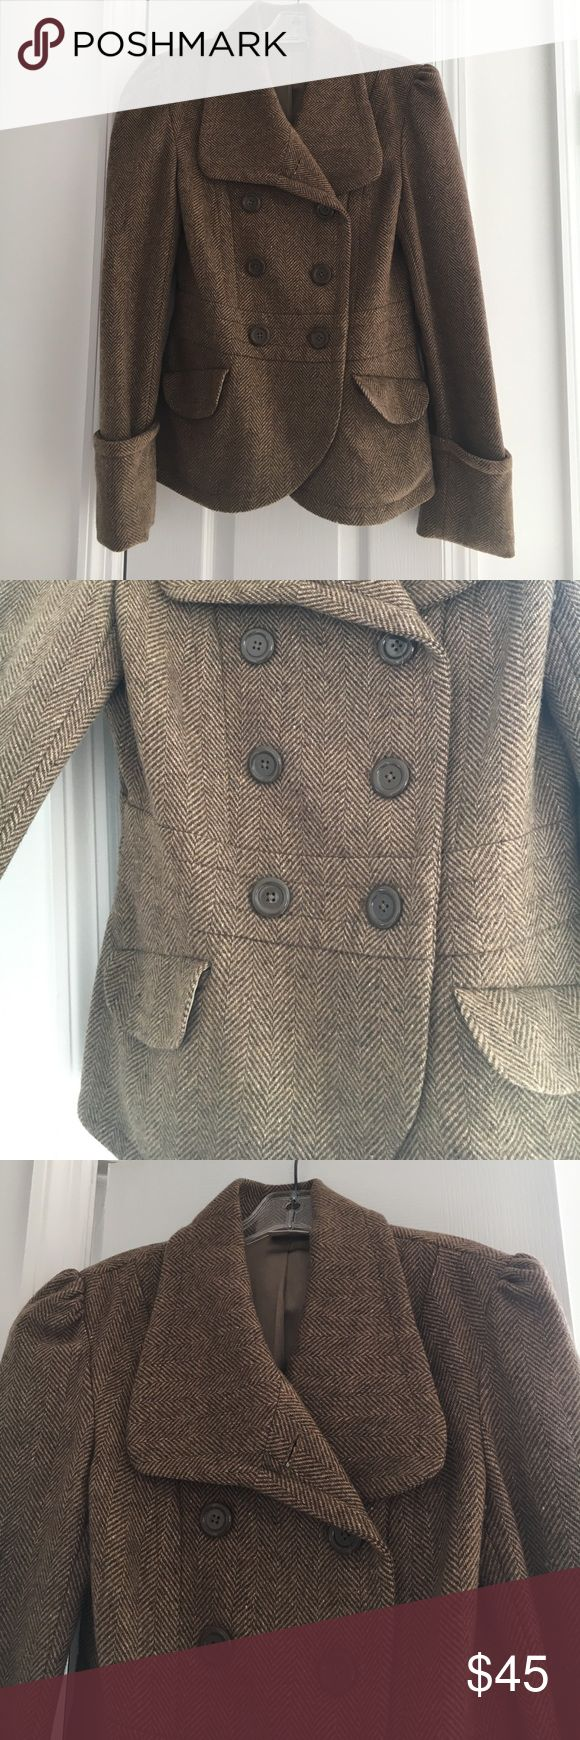 JLO by Jennifer Lopez Tweed Jacket Beautiful brown tweed jacket. Gently worn. Jennifer Lopez Jackets & Coats